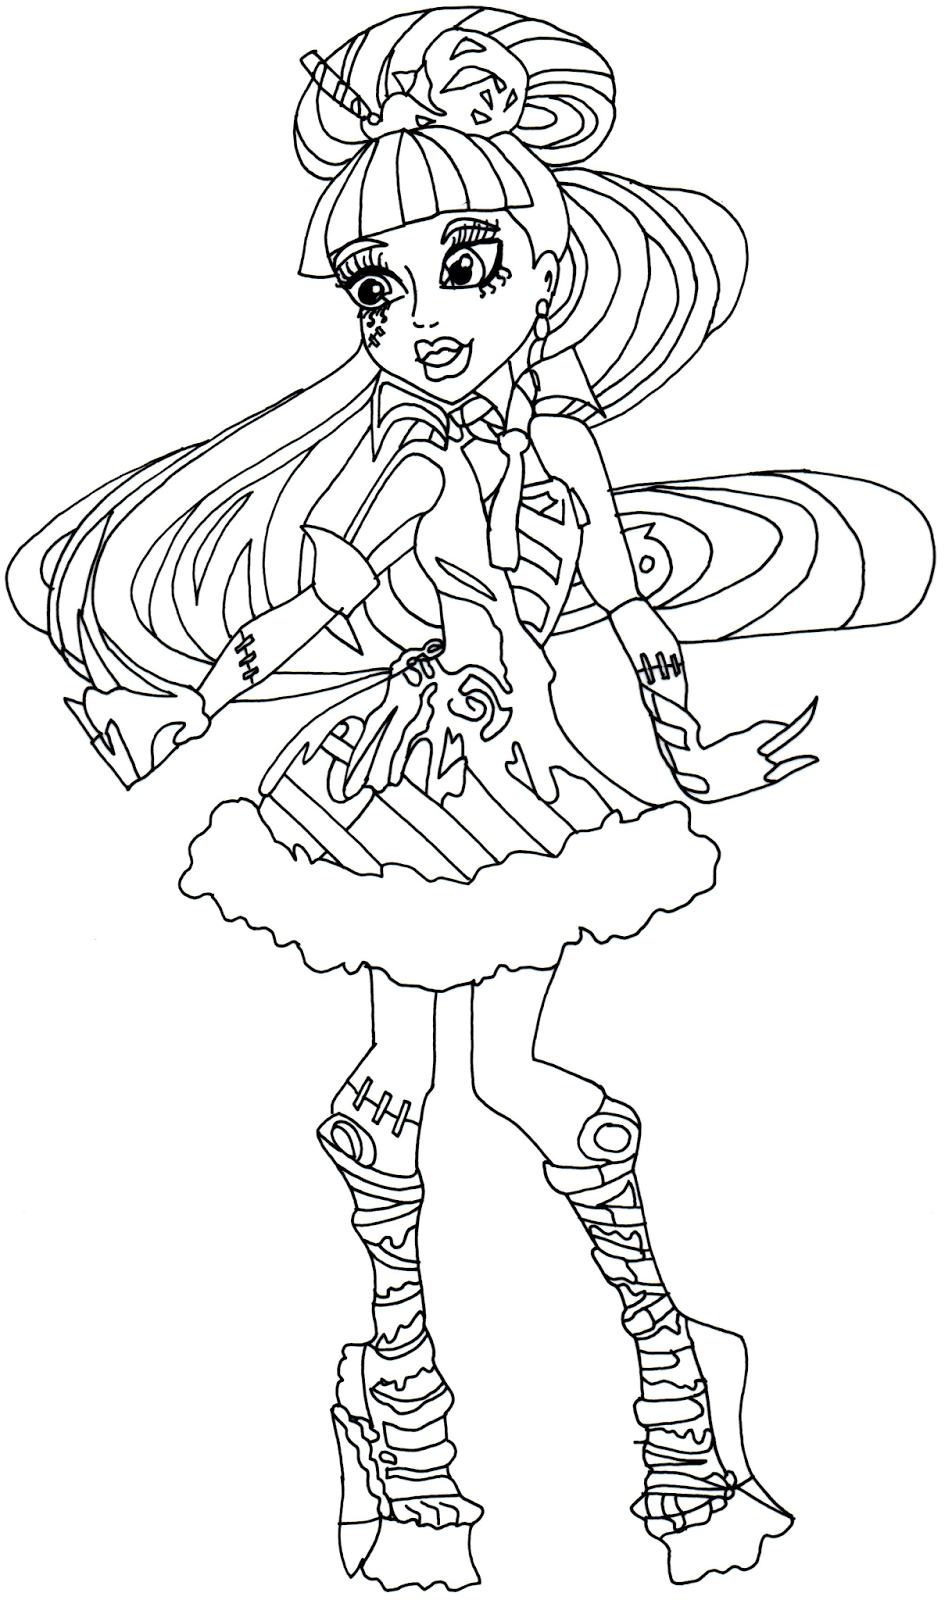 Monster High Free Printables Gallery Of Monster High Baby Coloring Pages 012 to Coloring Pages Collection